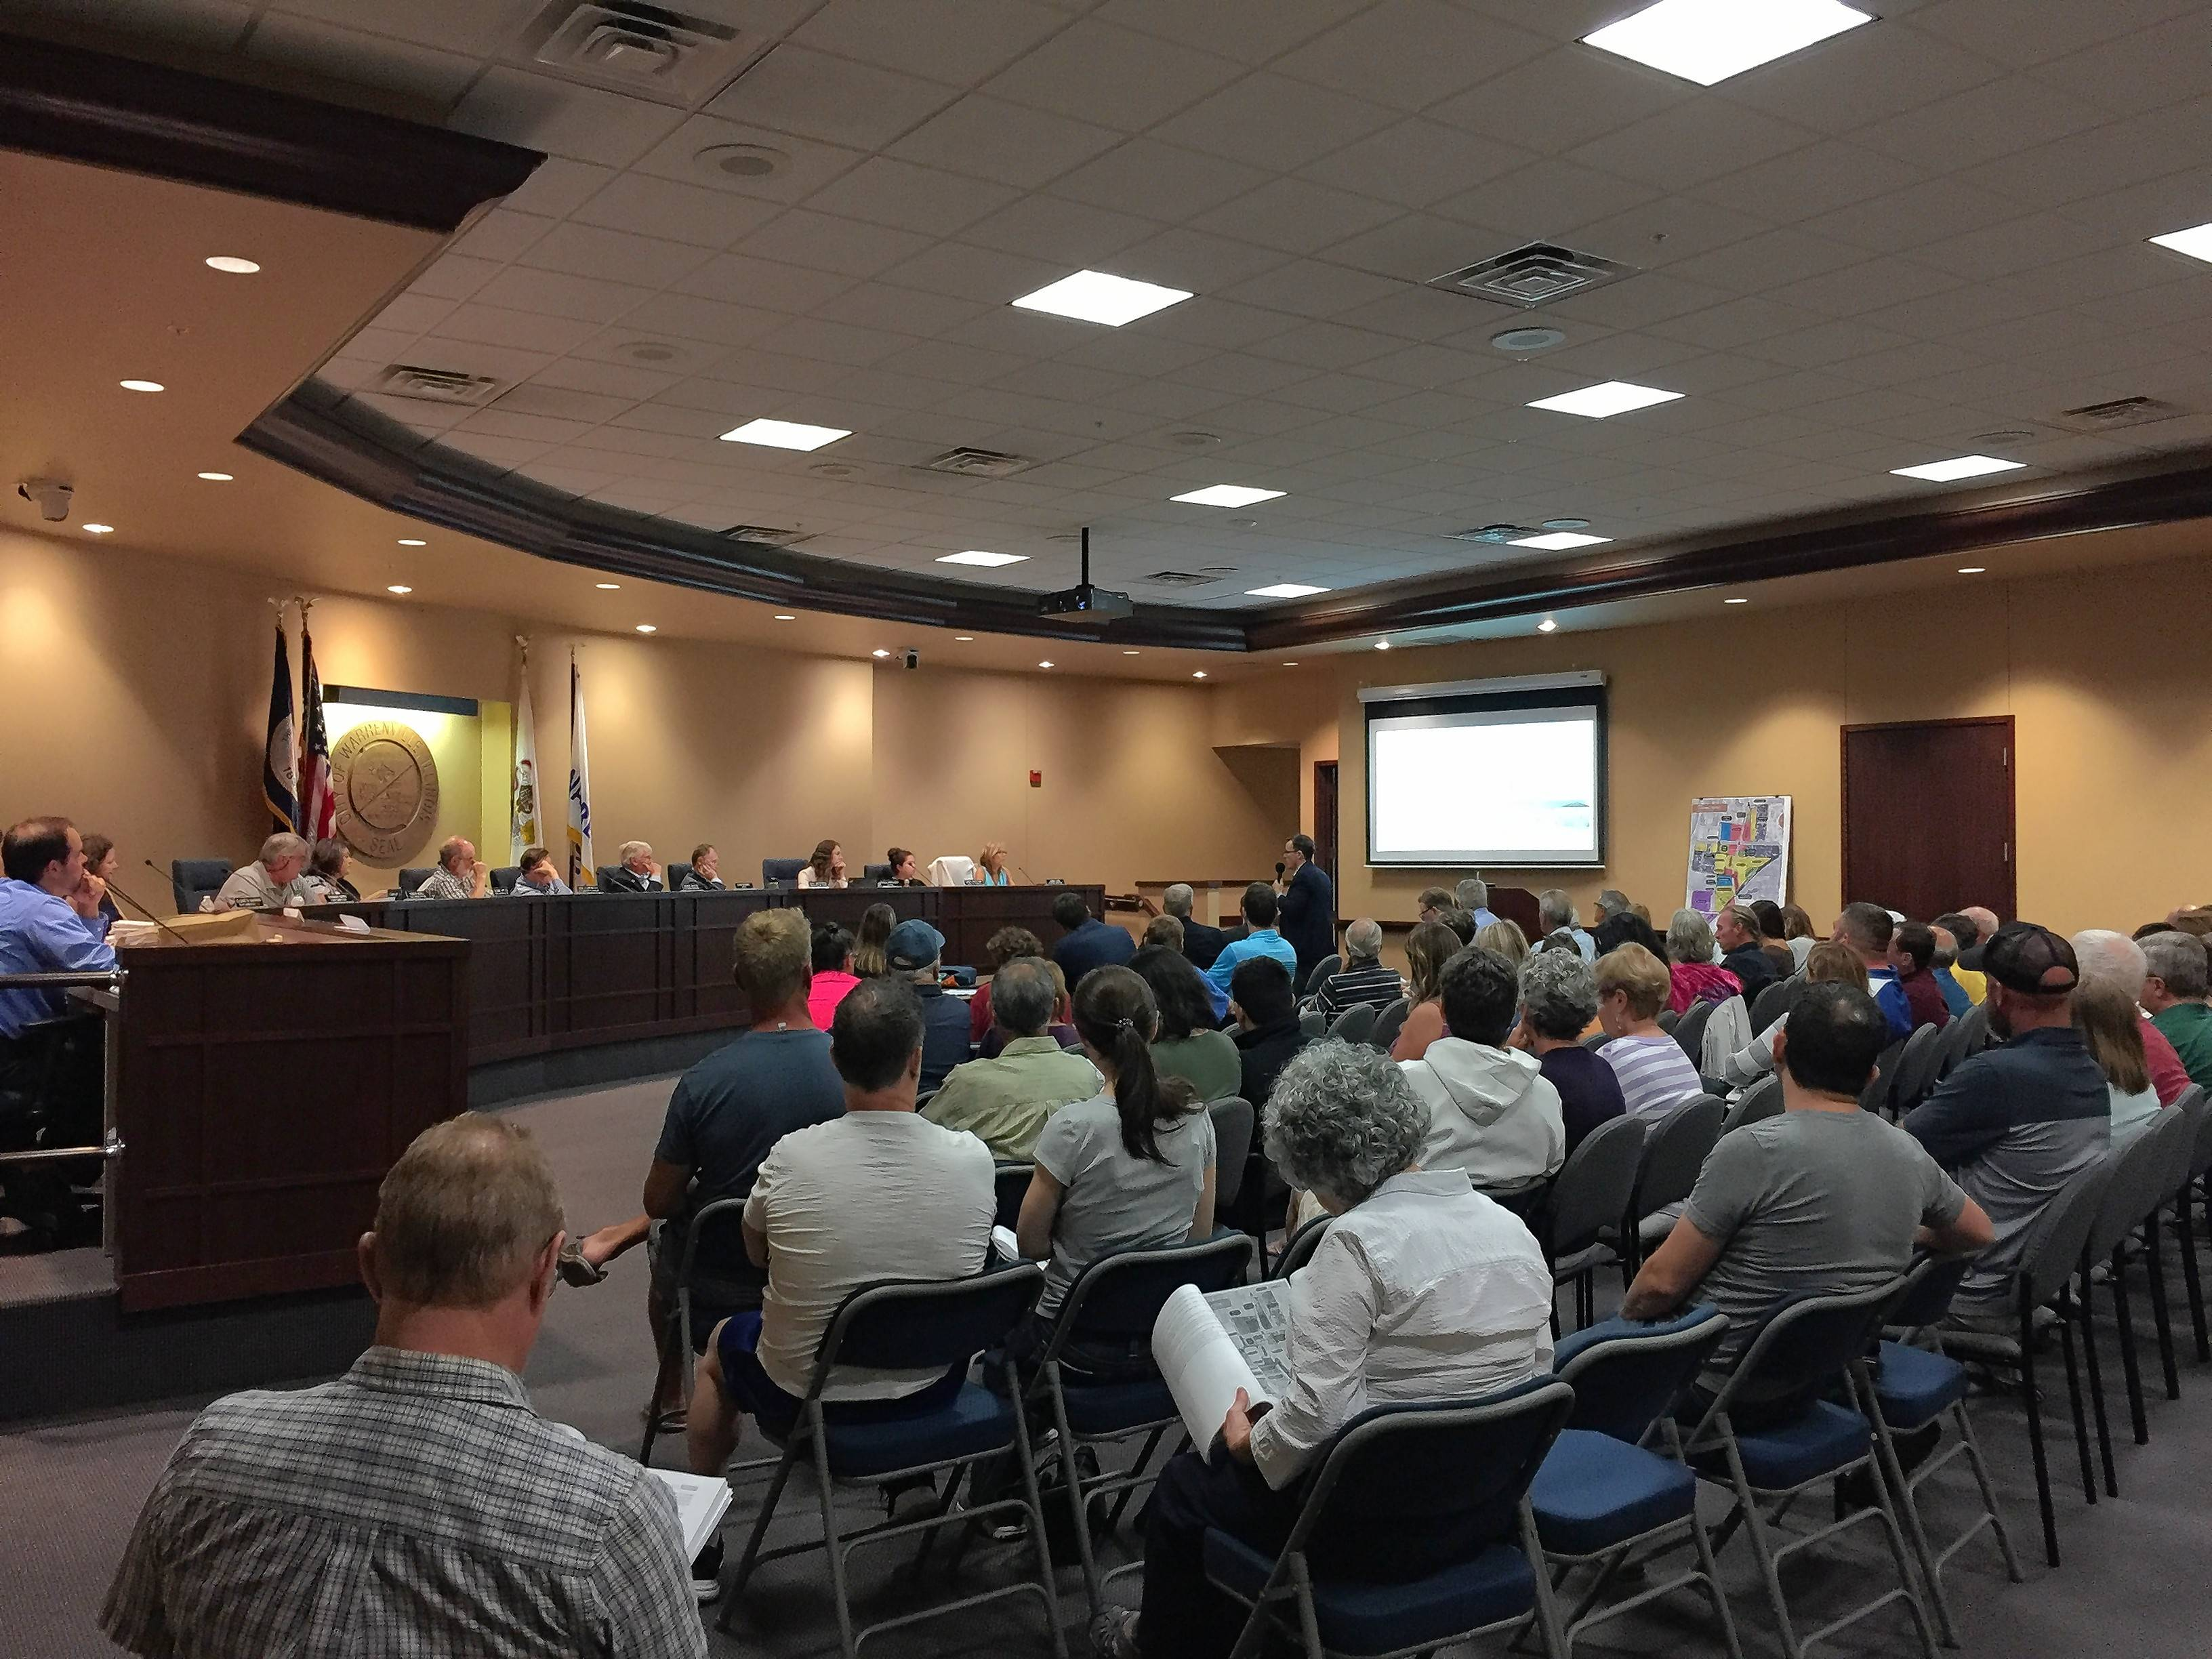 Roughly 45 residents attended a Thursday night meeting in Warrenville, where the city's plan commission recommended approval of a mixed-use project for nearly 33 acres along Route 59.